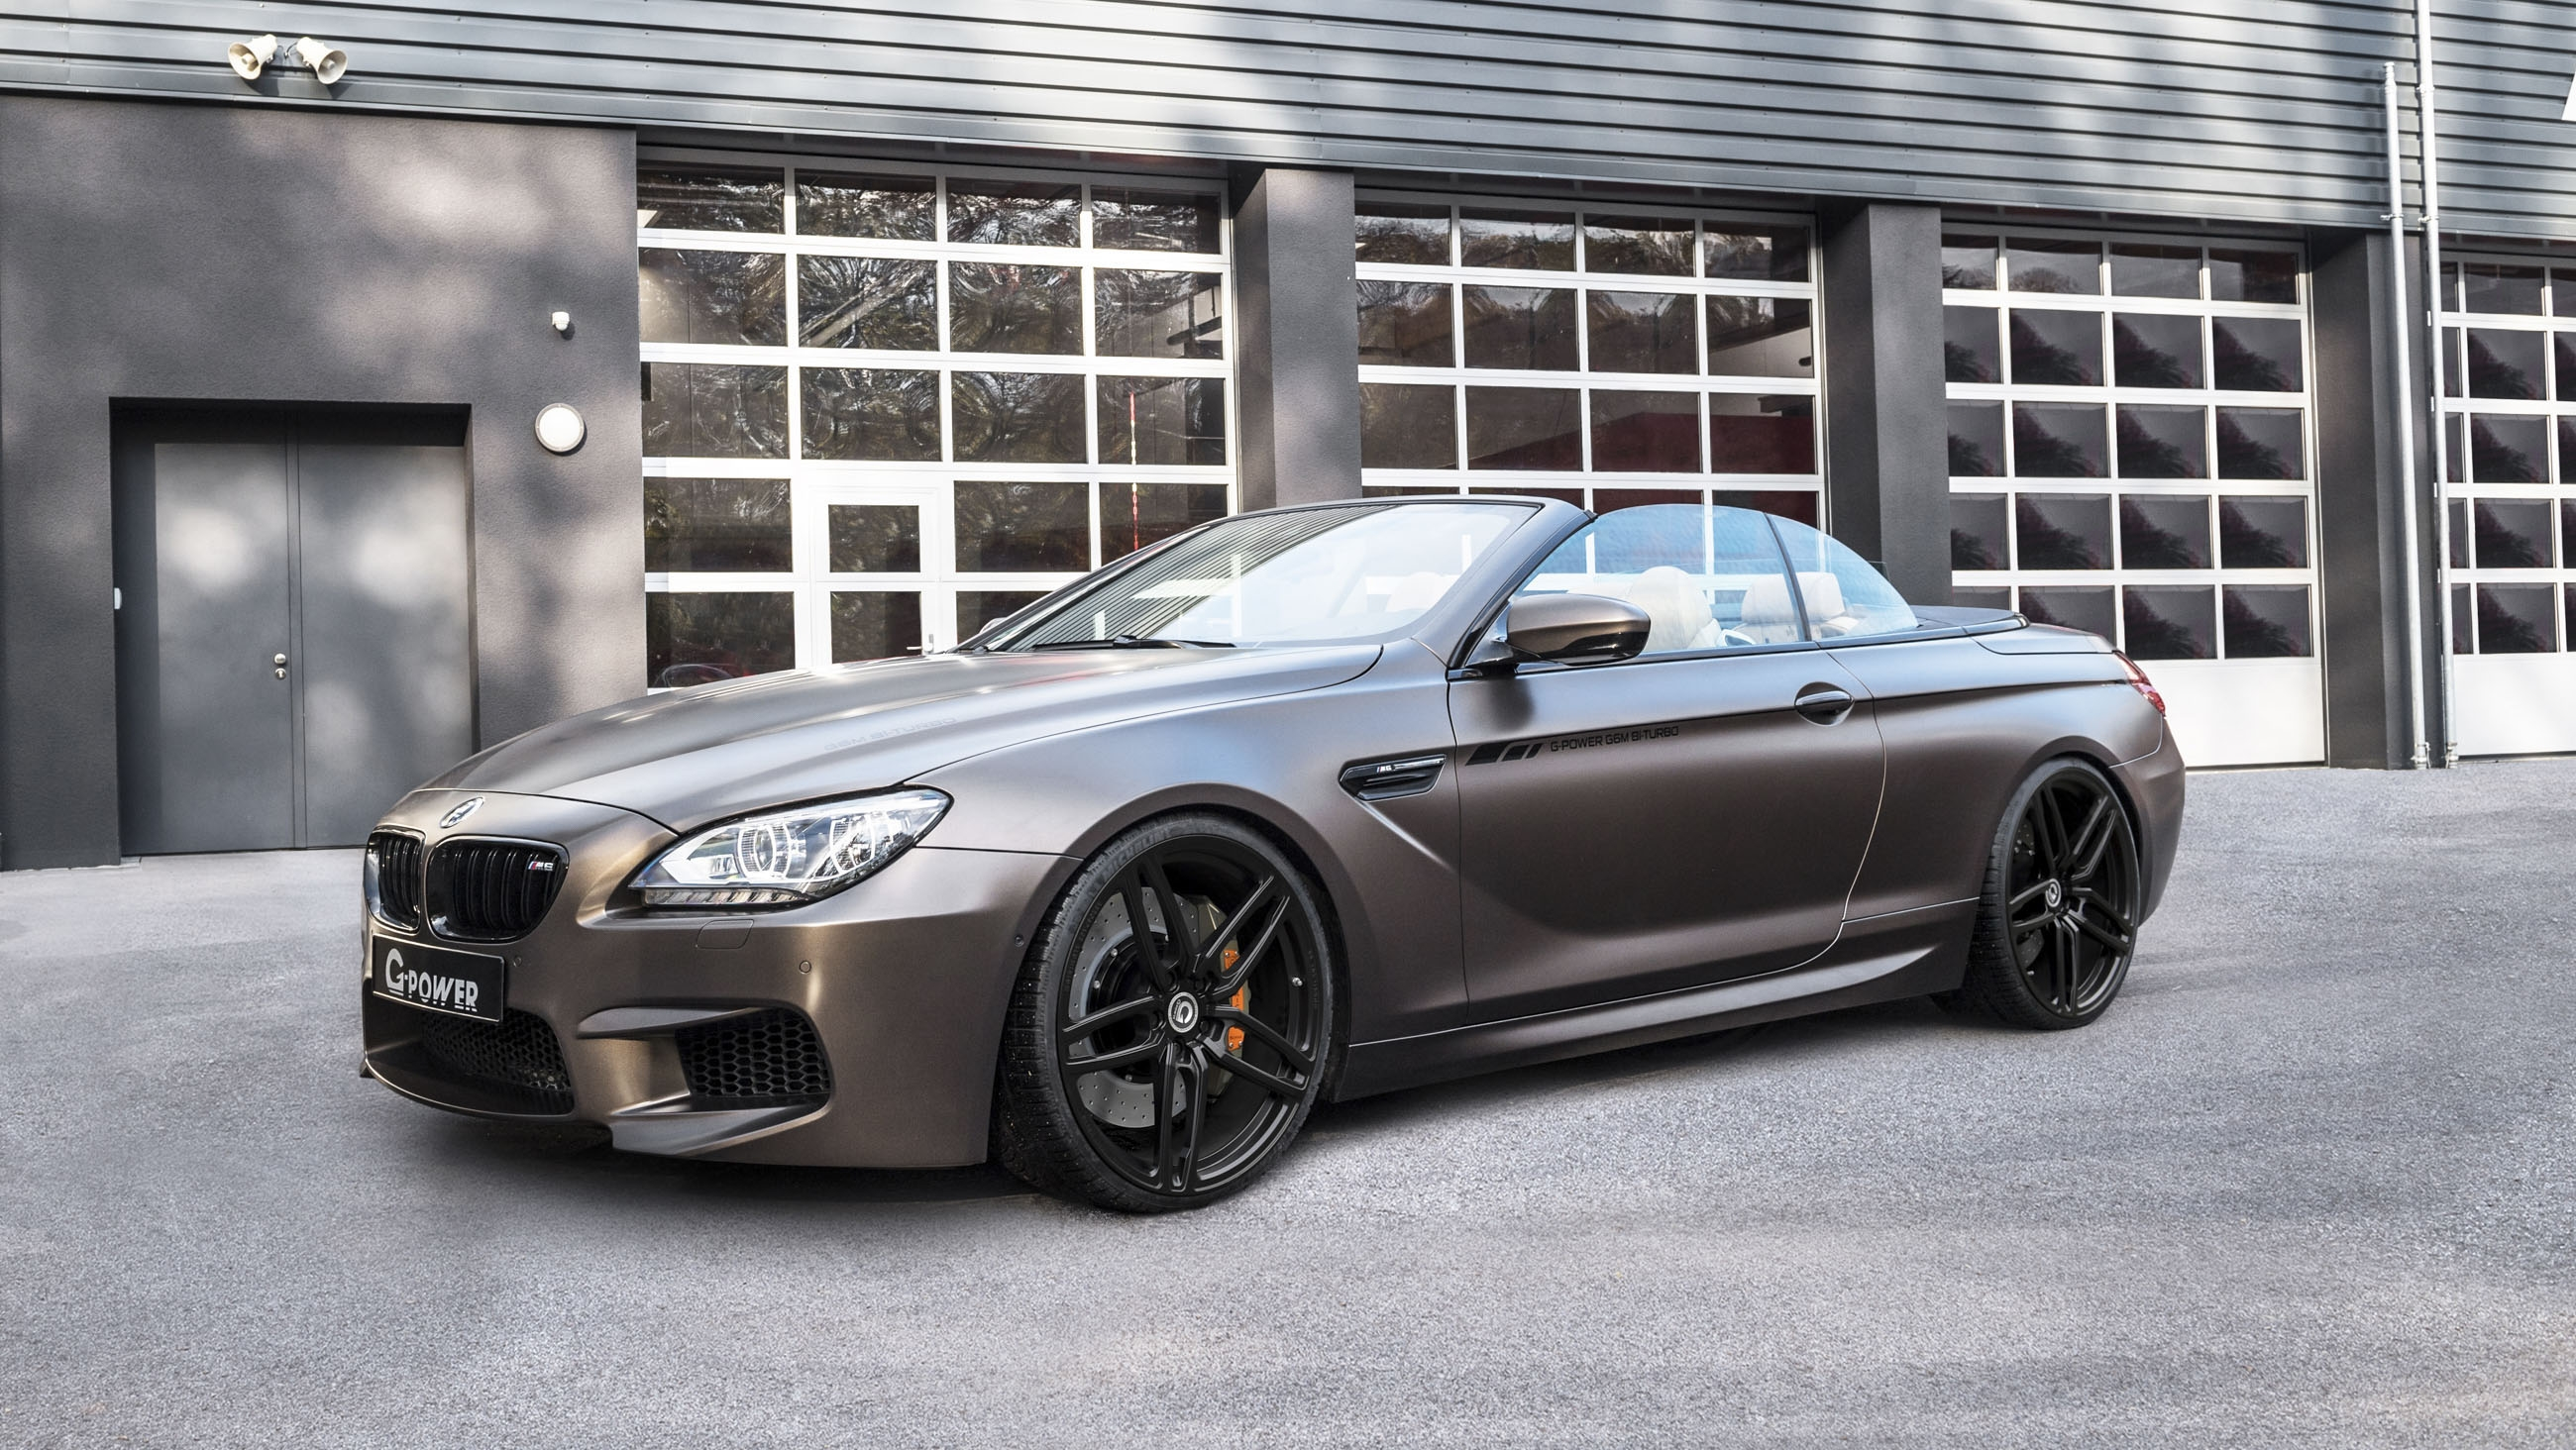 bmw m6 2017 images galleries with a bite. Black Bedroom Furniture Sets. Home Design Ideas